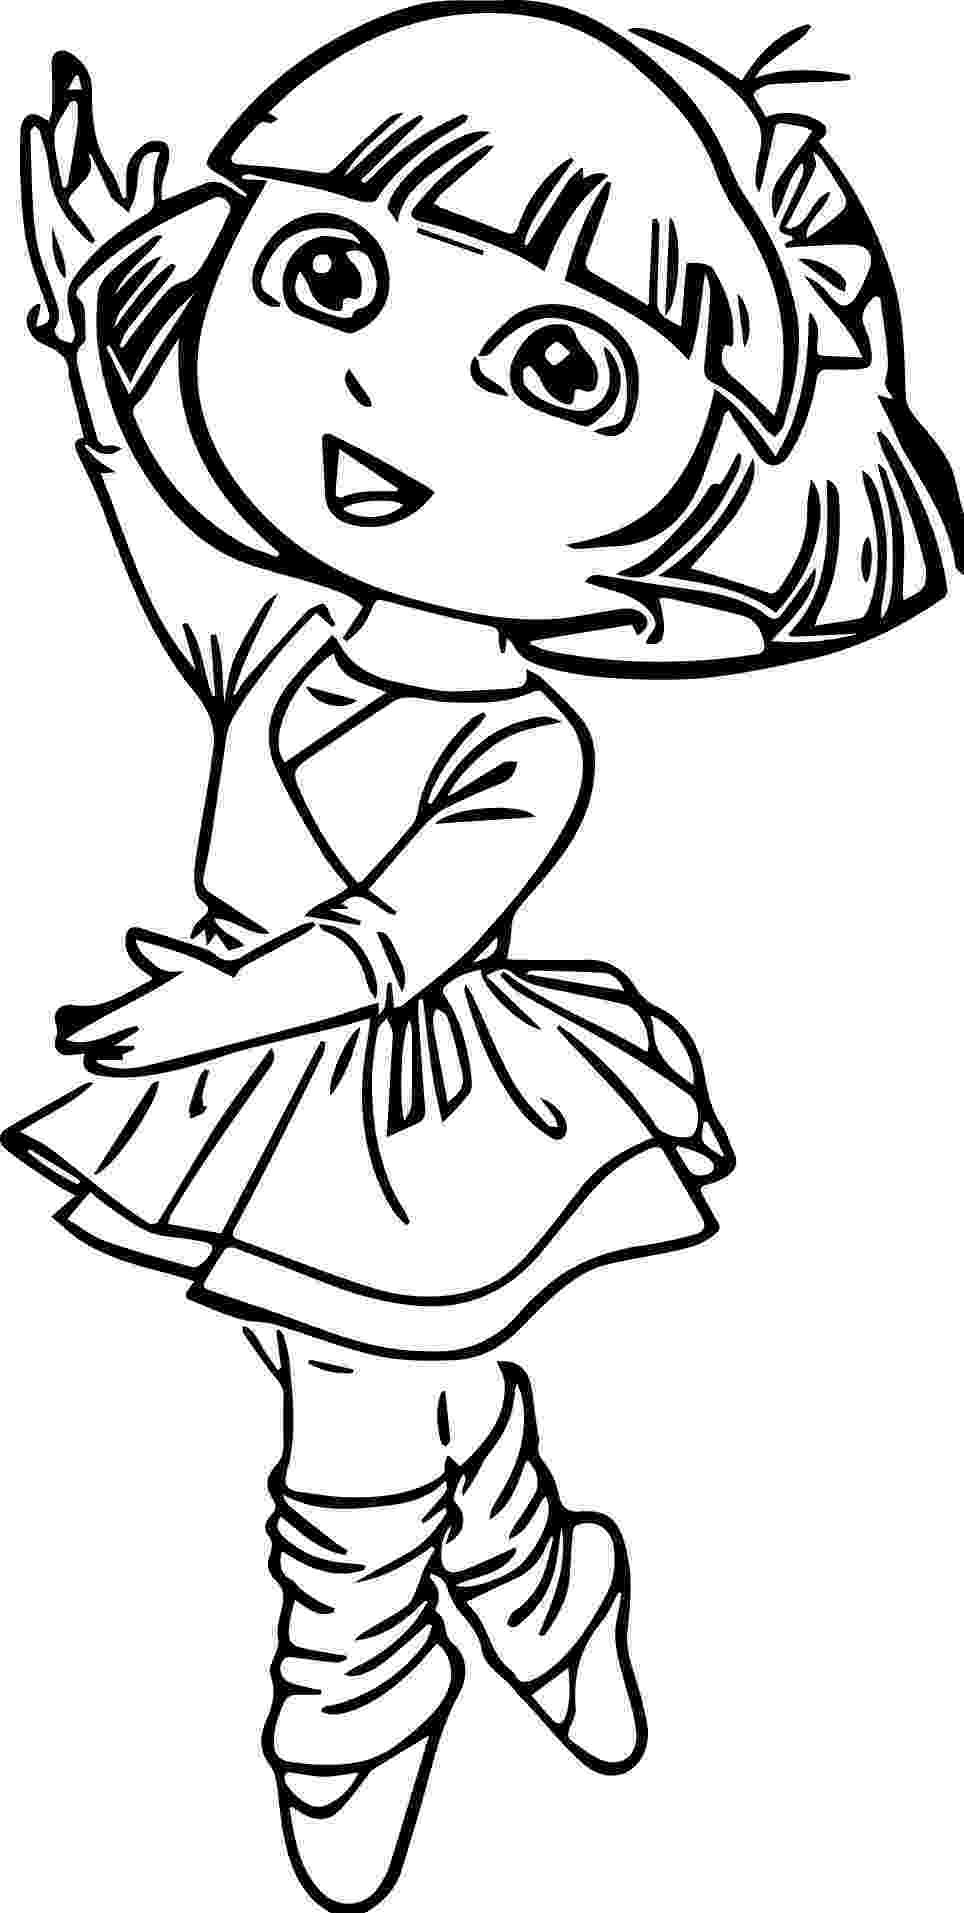 ballet coloring sheets ballet coloring pages at getdrawingscom free for ballet sheets coloring